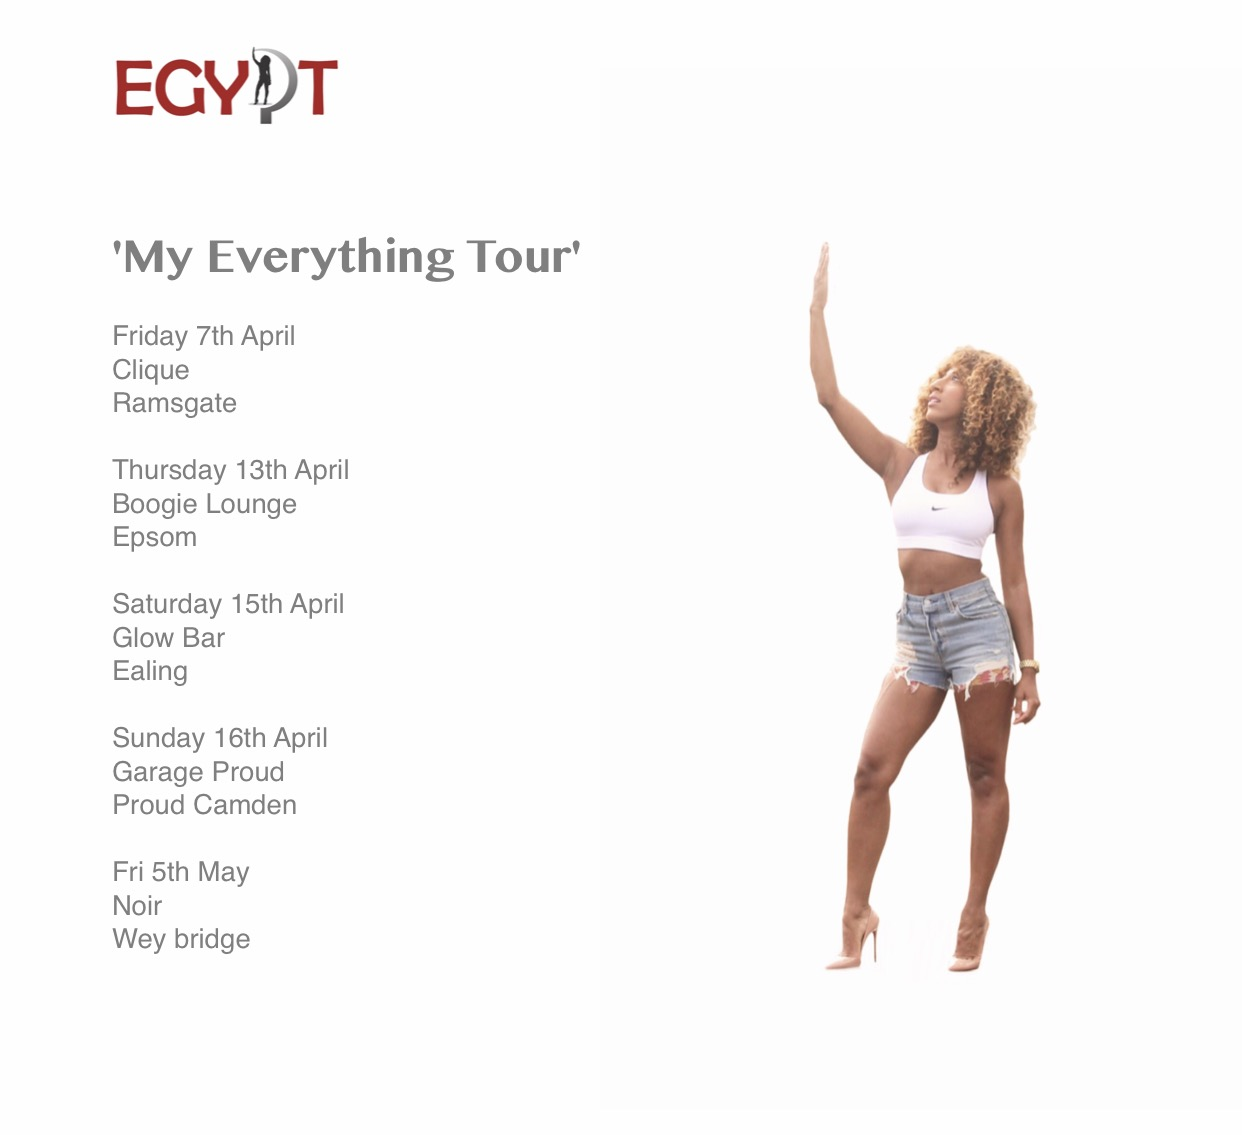 'My Everything Tour' 2017